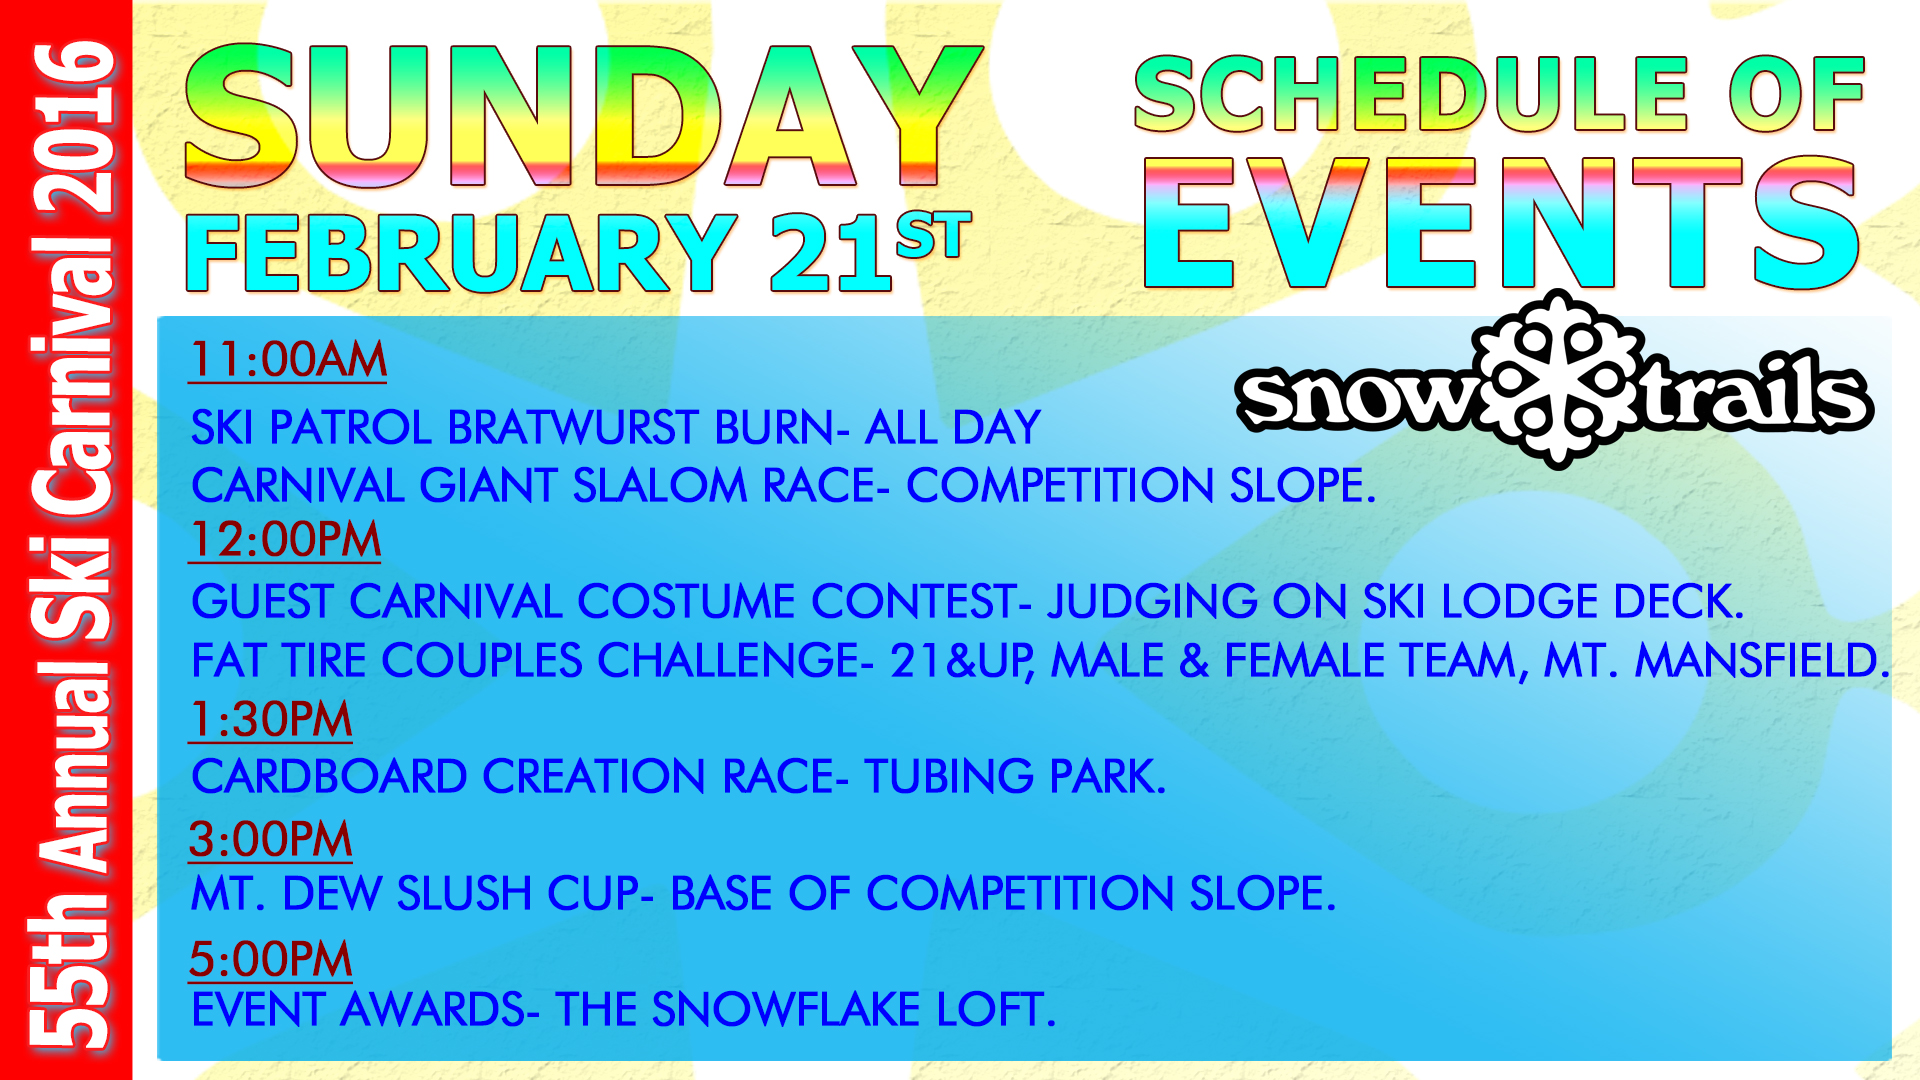 55th Carnival Sunday, February 21st Schedule of Events